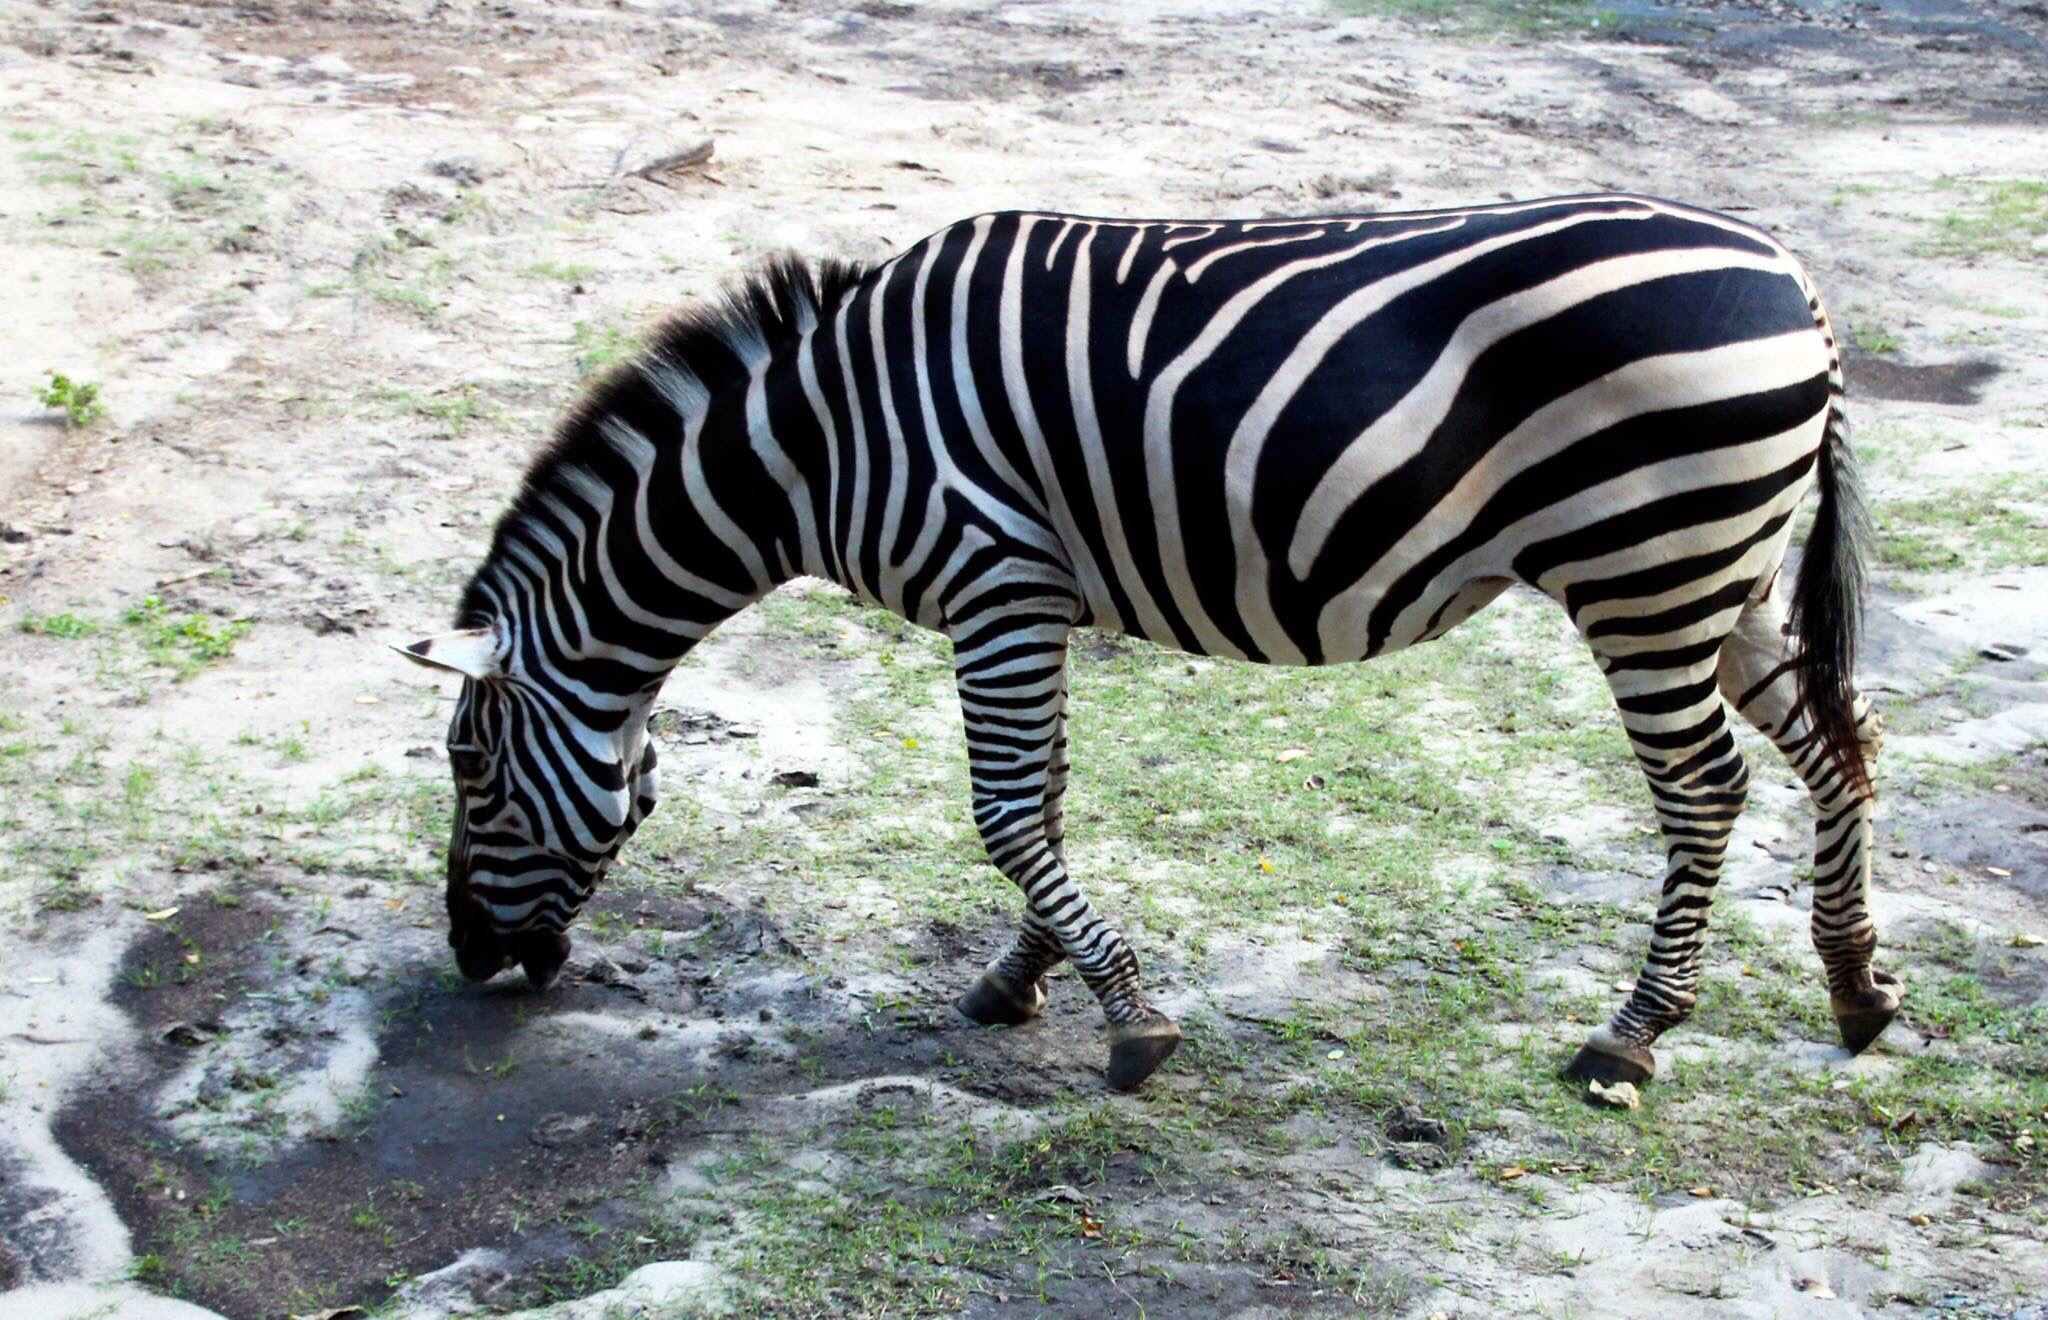 Zebra by Joe Boyes